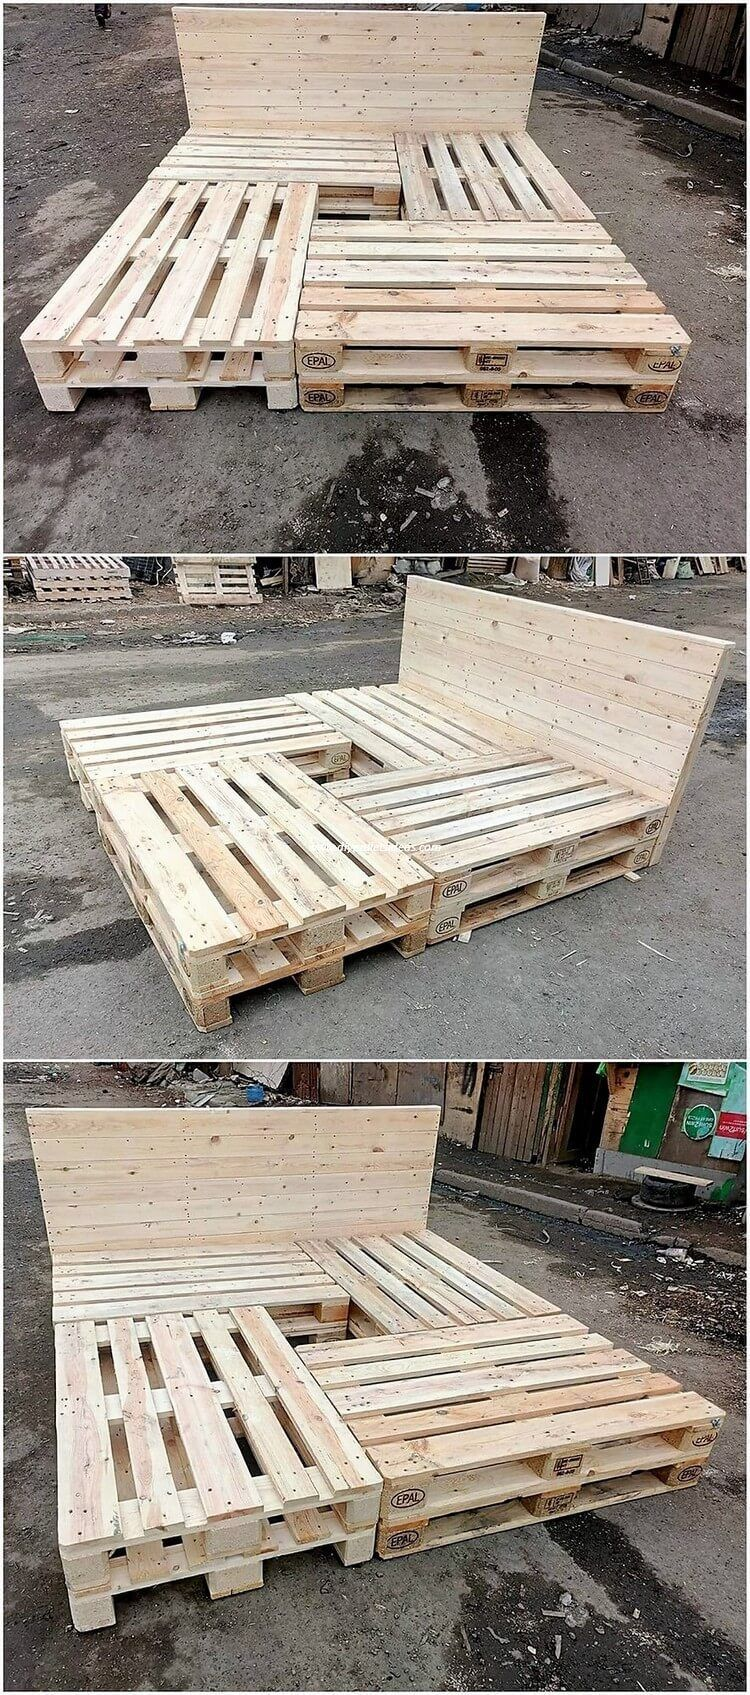 Grab this wood pallet reusing idea where the amazing formation work of the bed famazing